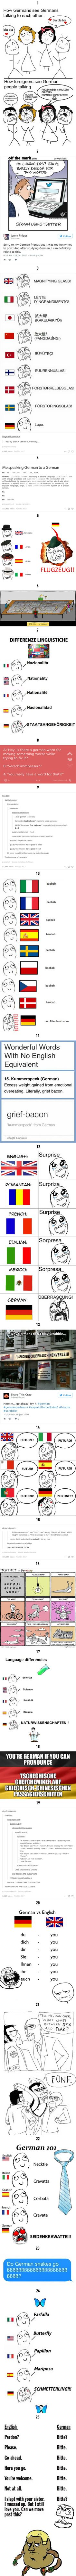 25 Hilarious Reasons Why The German Language Is The Worst